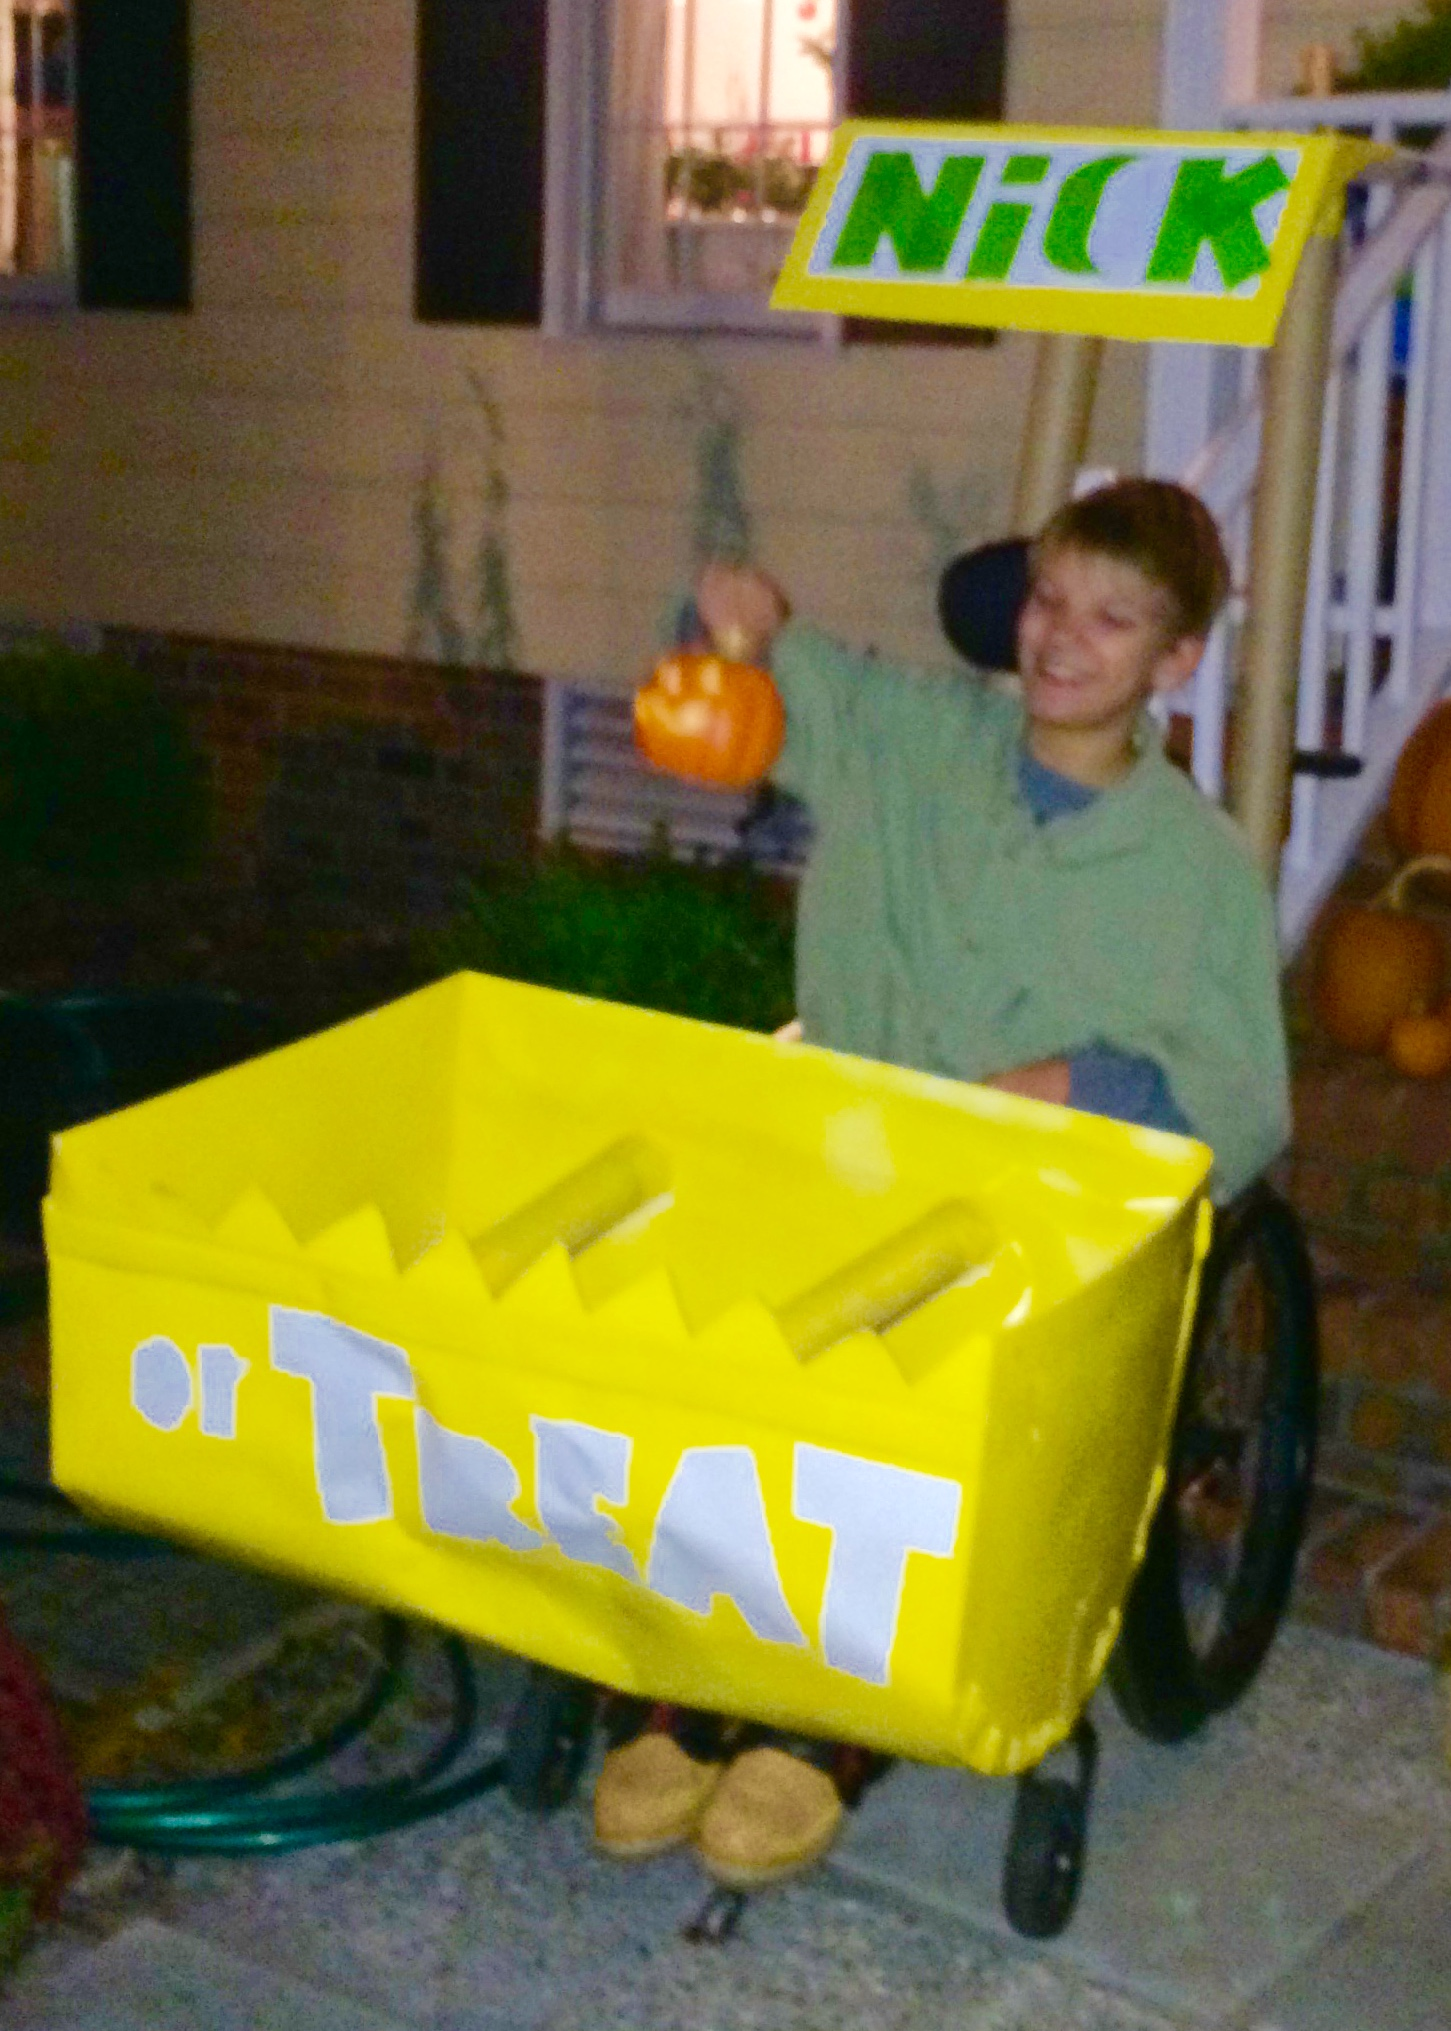 Front End Loader is excellent for receiving and handing out candy!